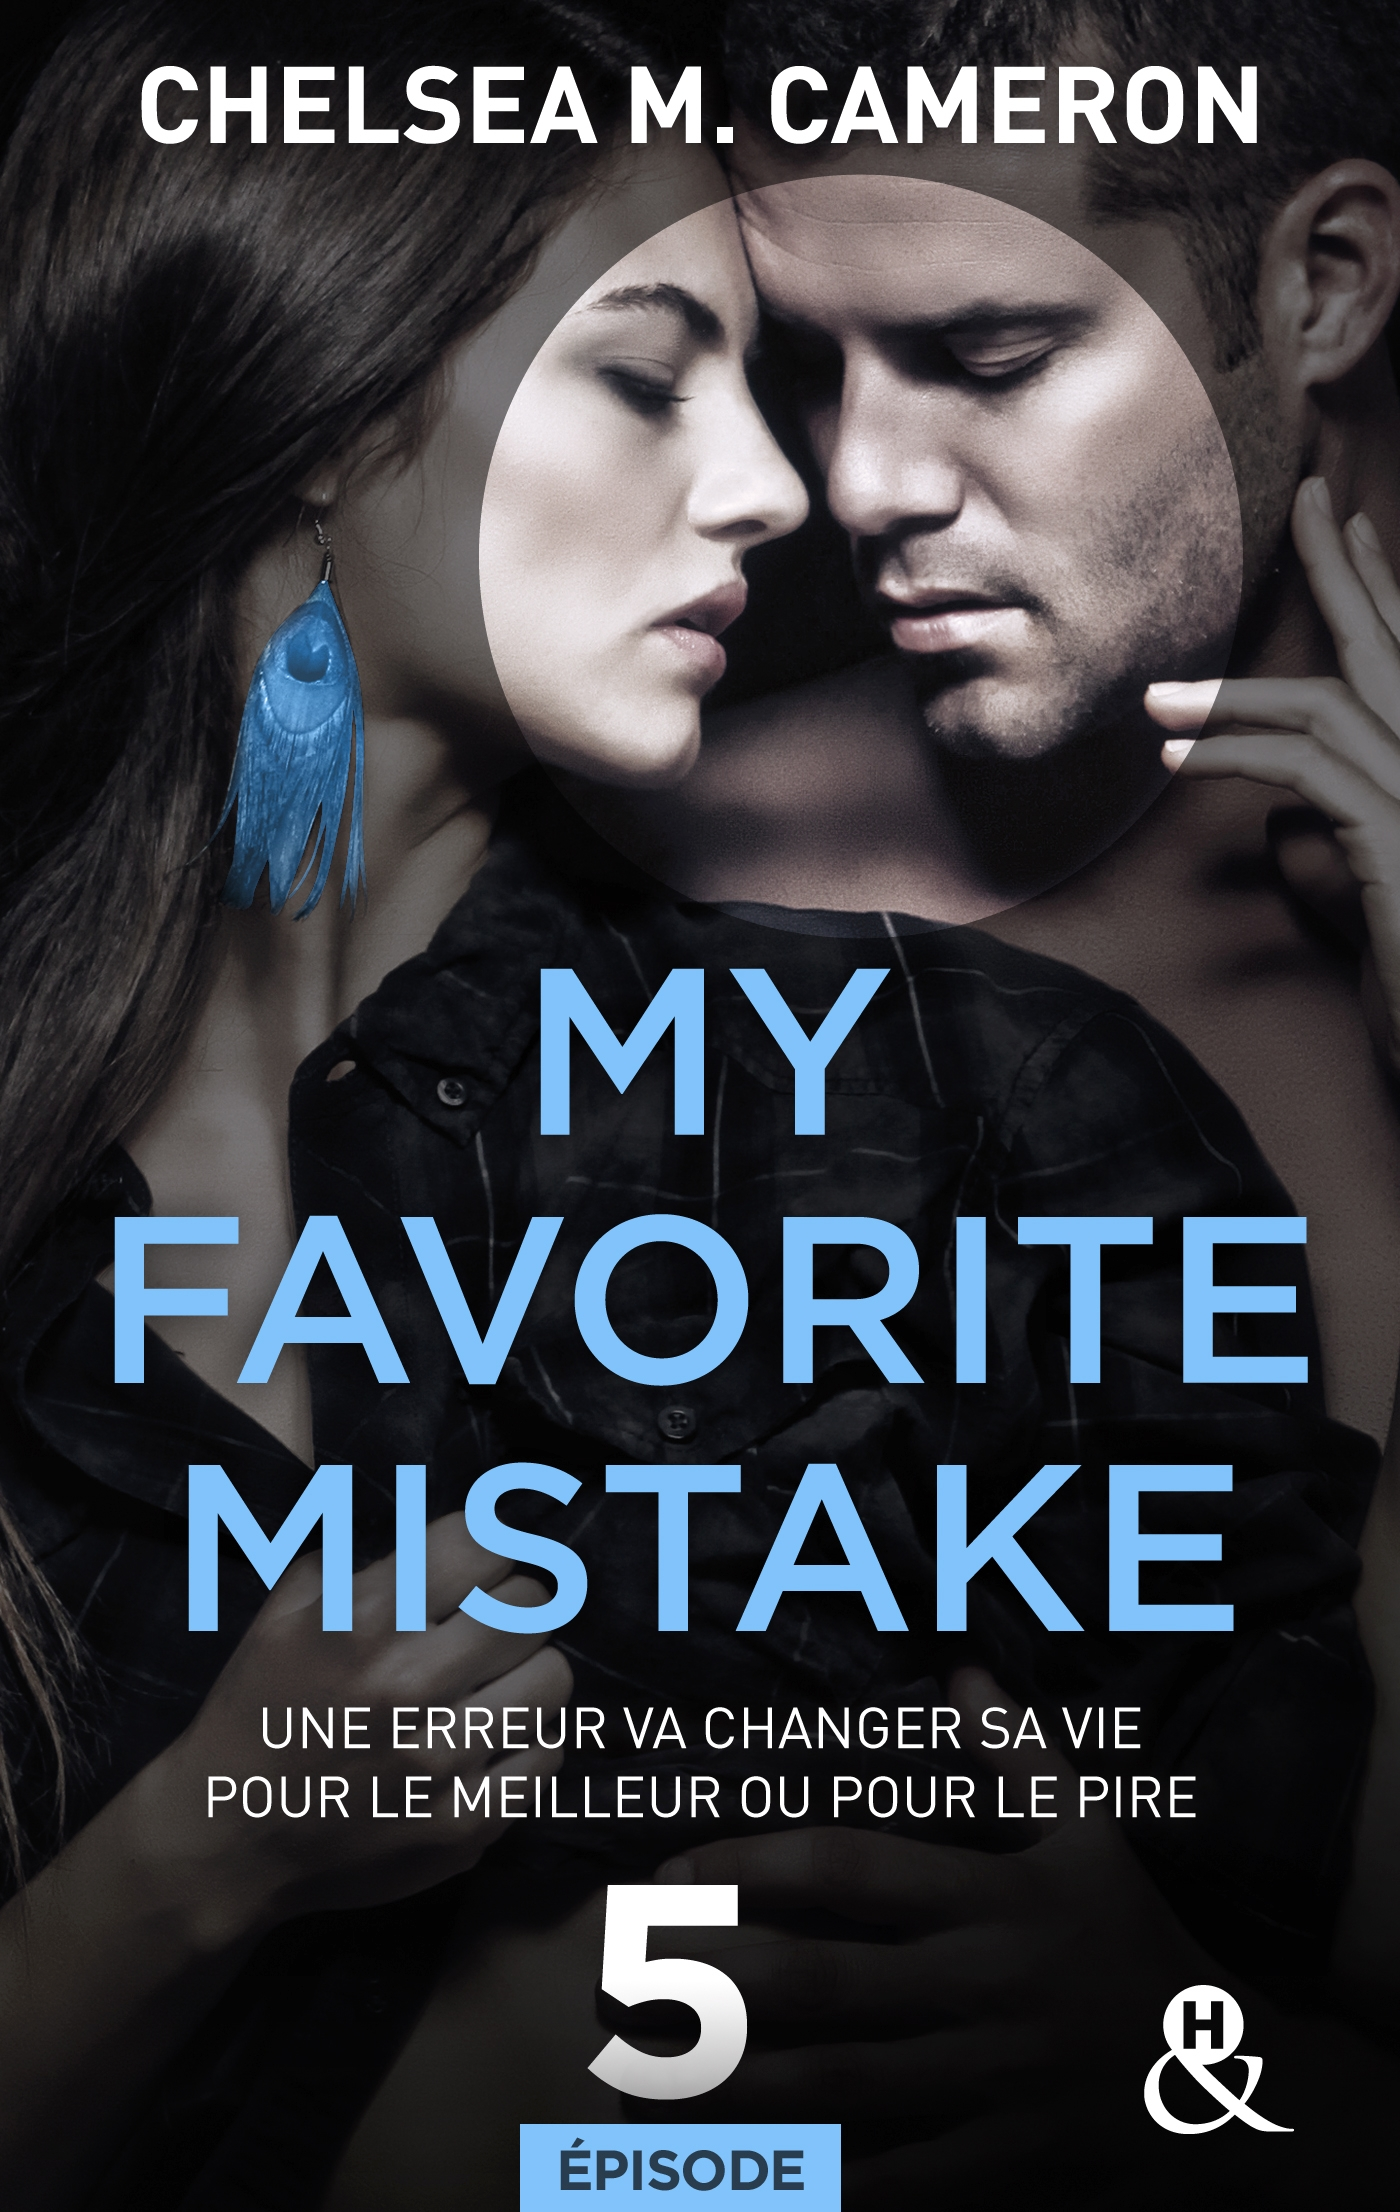 My favorite mistake - Episode 5